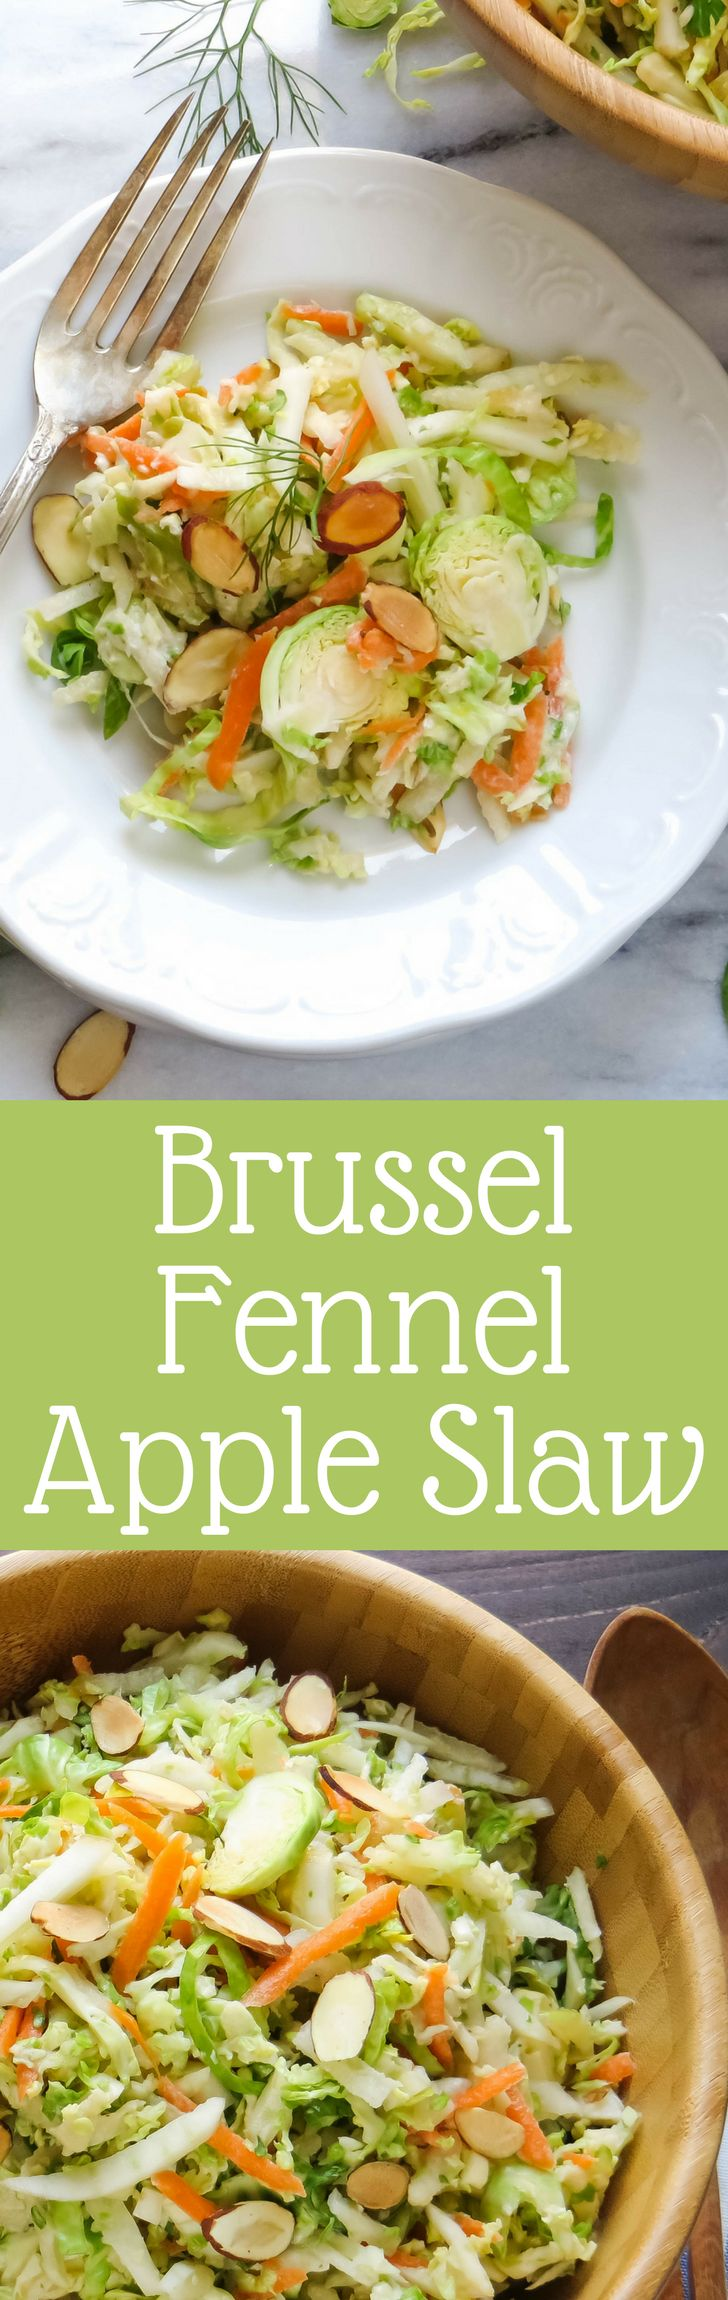 Not your average cole slaw recipe, Brussel Fennel Apple Slaw is loaded with veg & tossed with a tangy dressing.  Perfect for your next picnic or cookout!